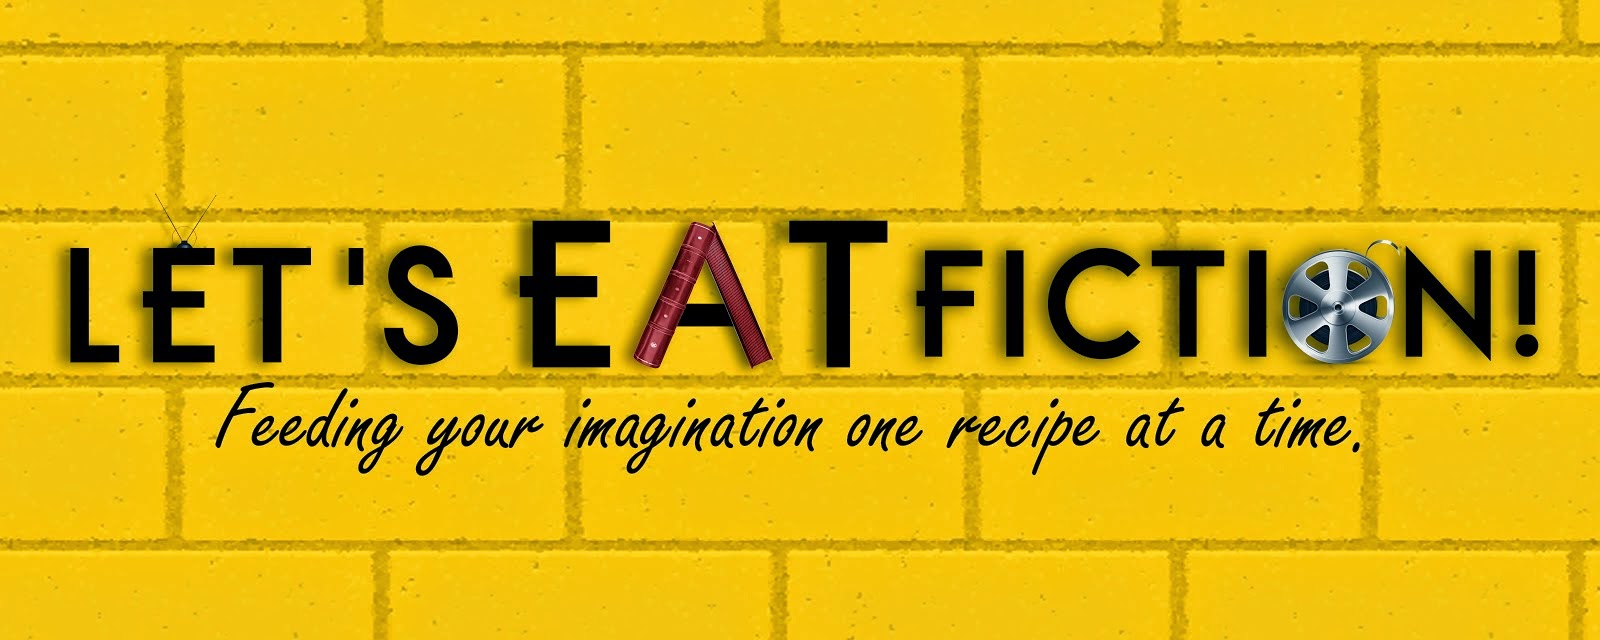 Let's Eat Fiction!